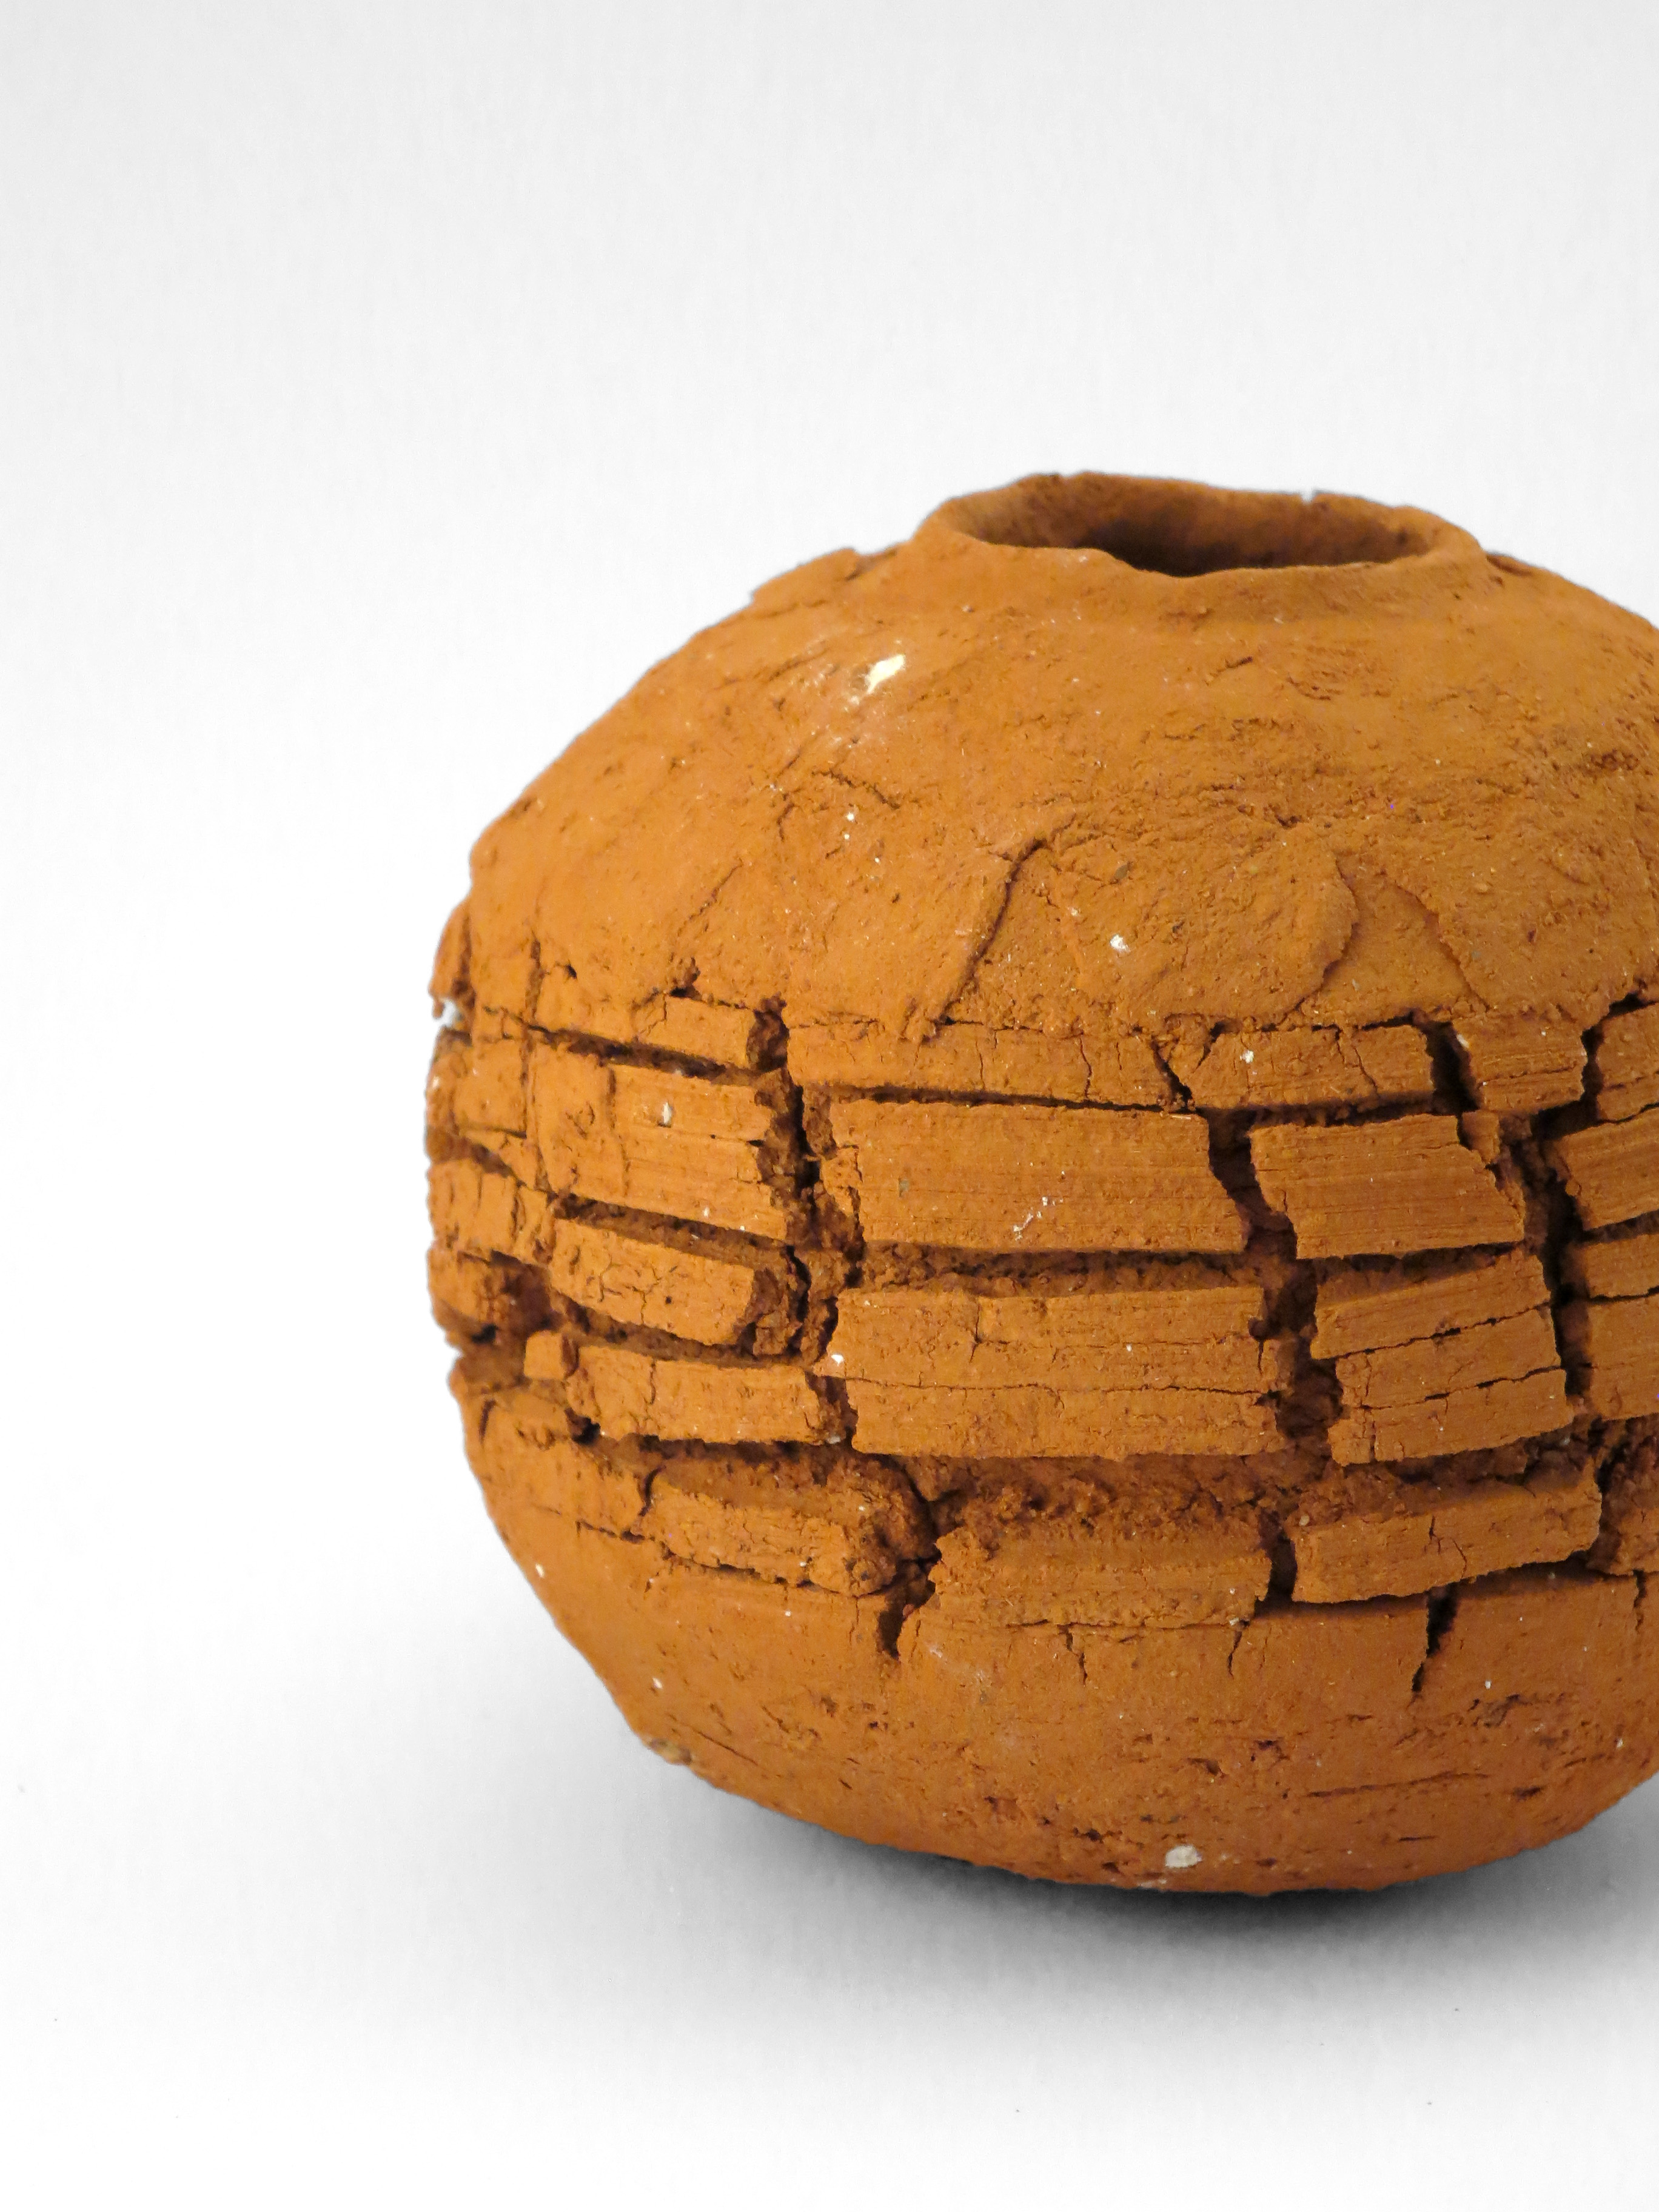 Scorched Earth: Whispering Globe from the Wild Clay Series (detail) - Ildikó Károlyi